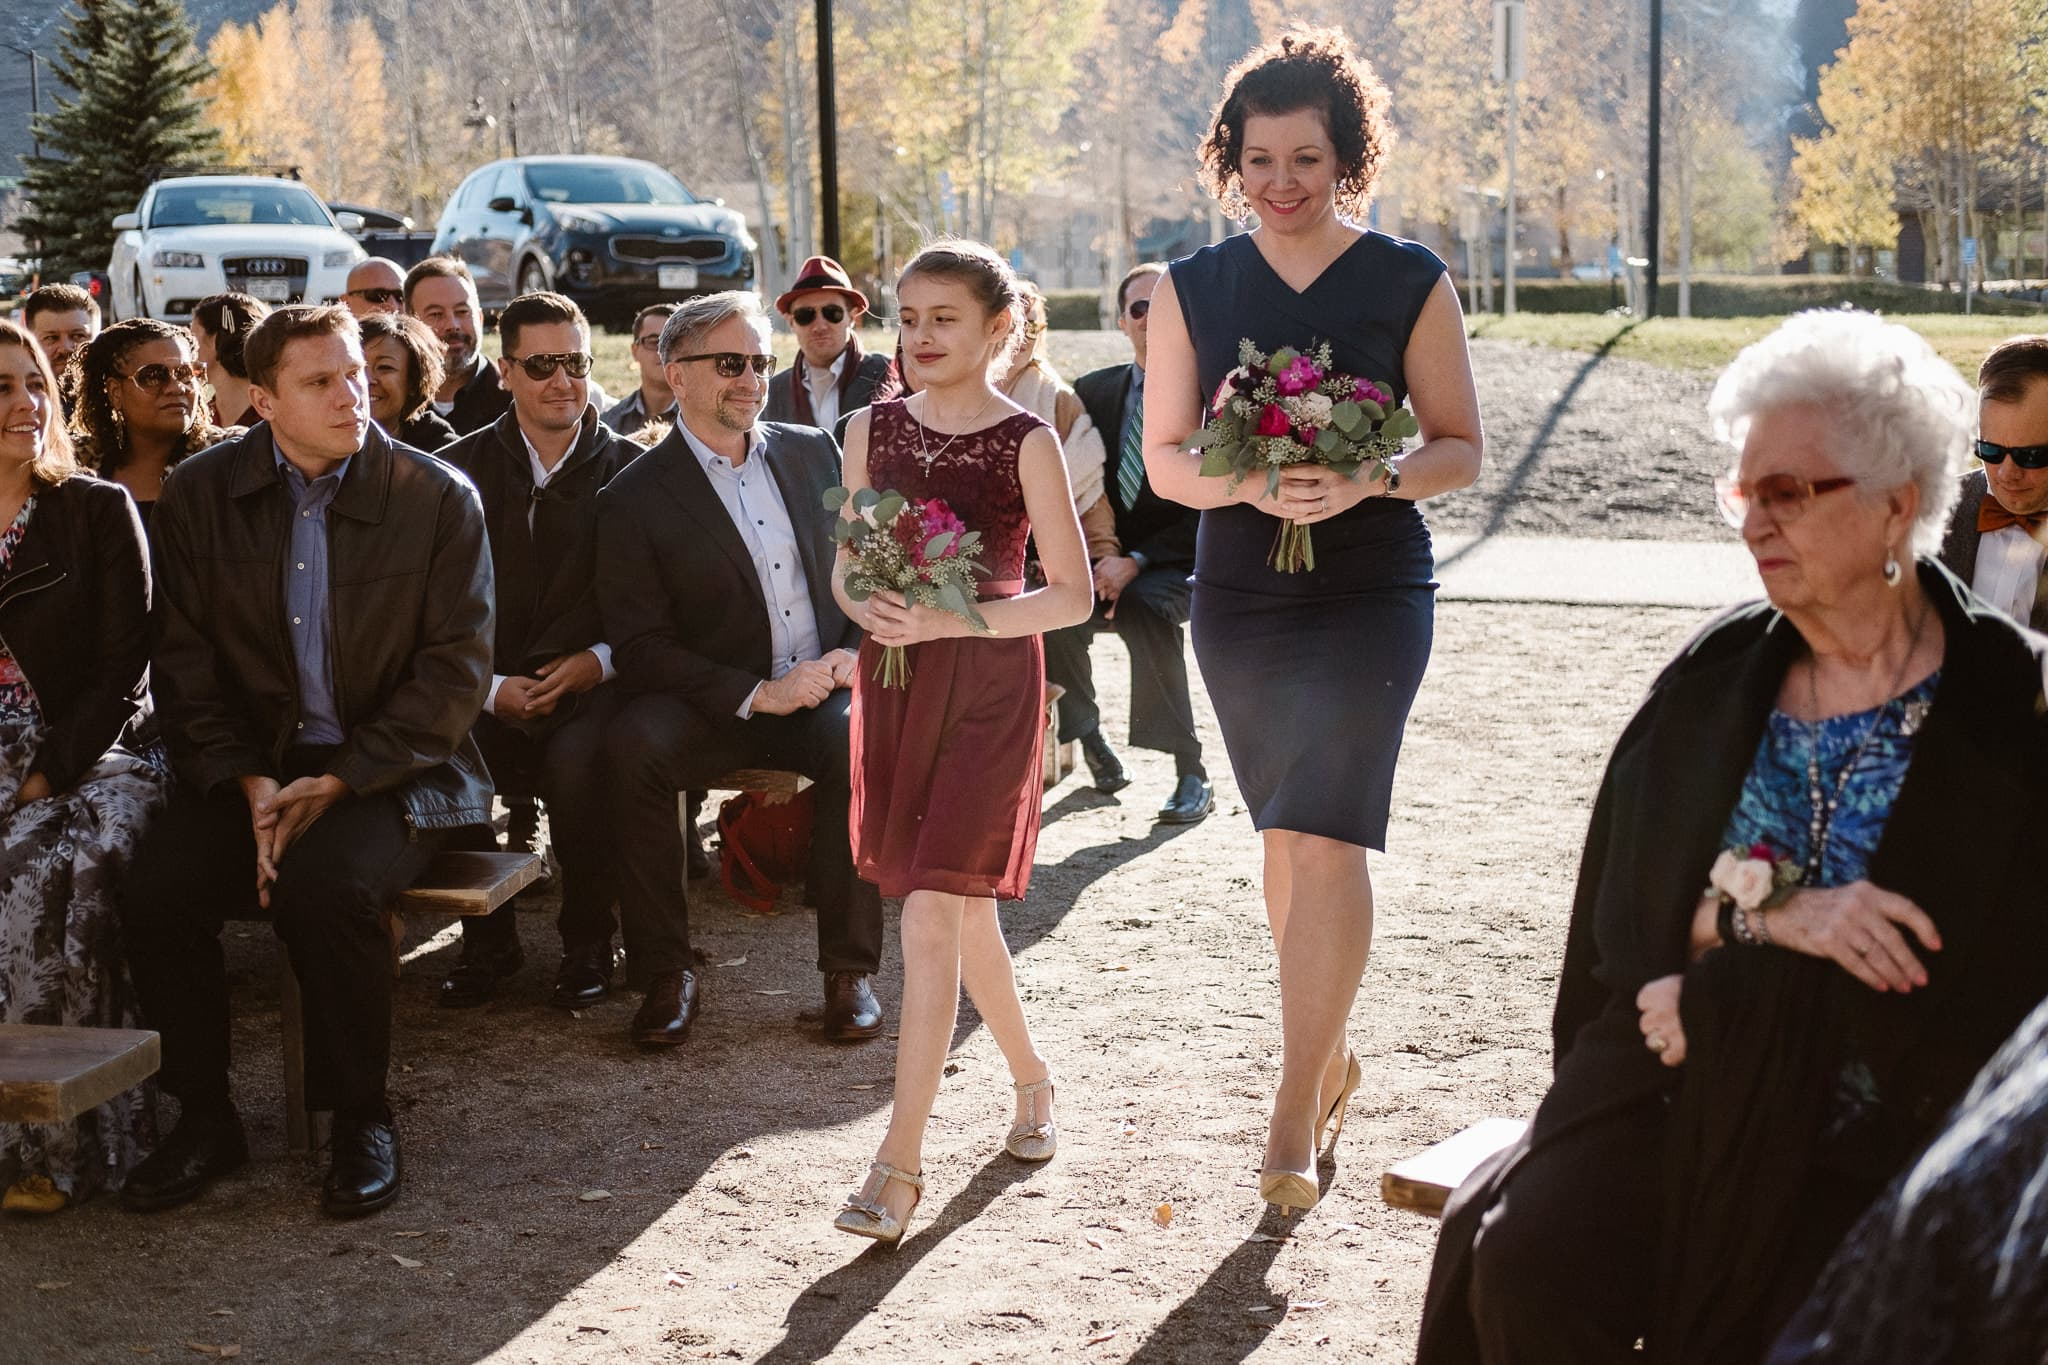 Silverthorne Pavilion wedding ceremony, Colorado wedding photographer, maid of honor and best woman walking down aisle